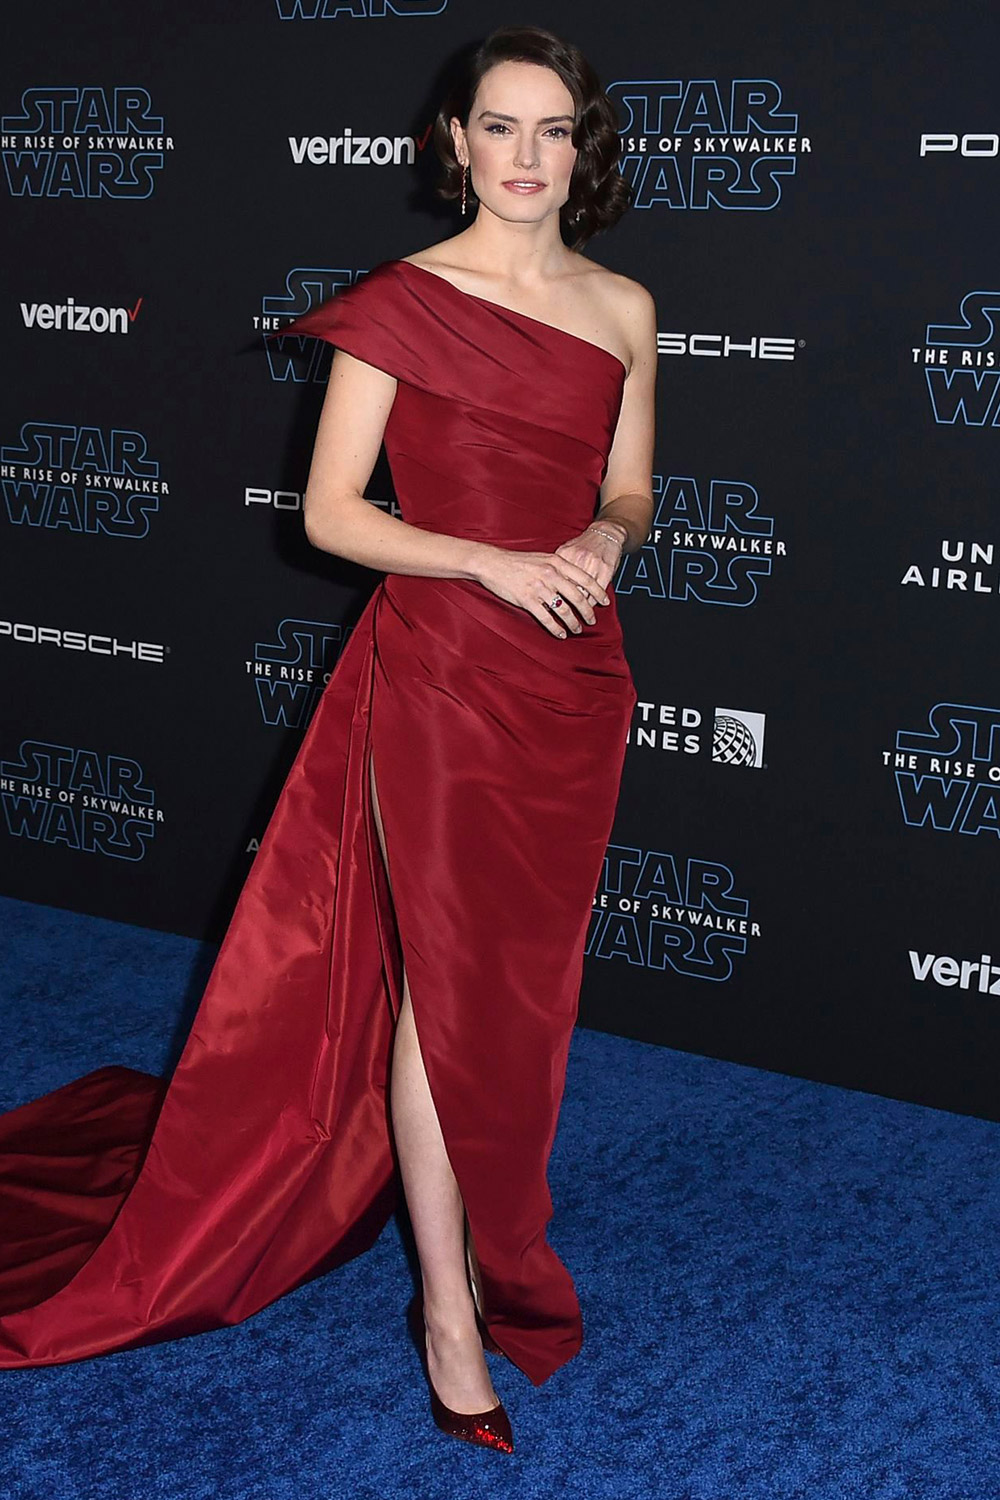 """World Premiere of """"Star Wars: The Rise of Skywalker"""" - Arrivals, Los Angeles, USA - 16 Dec 2019"""